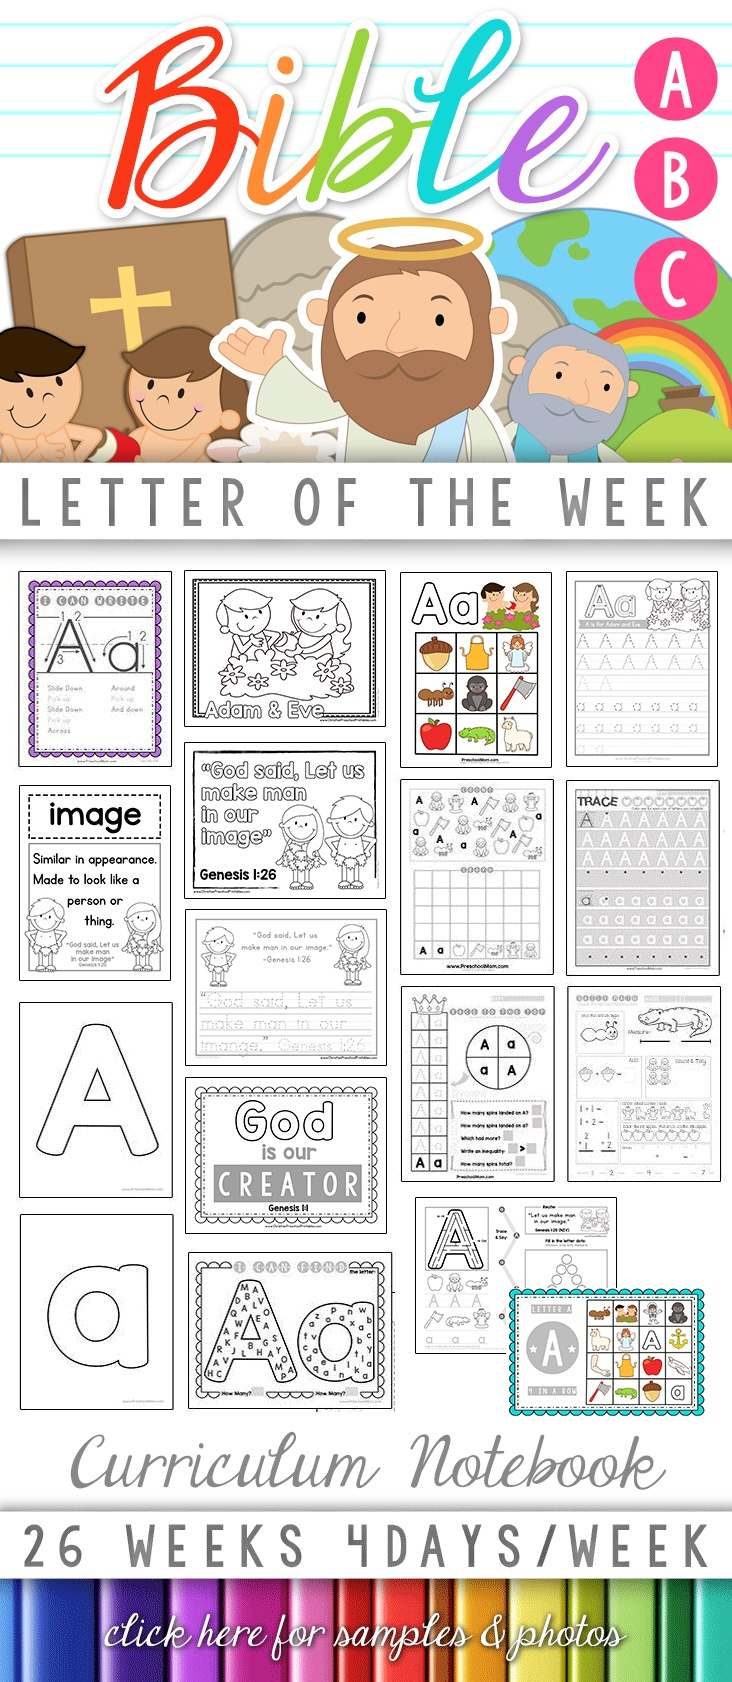 Bible Abc Printables - Christian Preschool Printables - Free Printable Bible Crafts